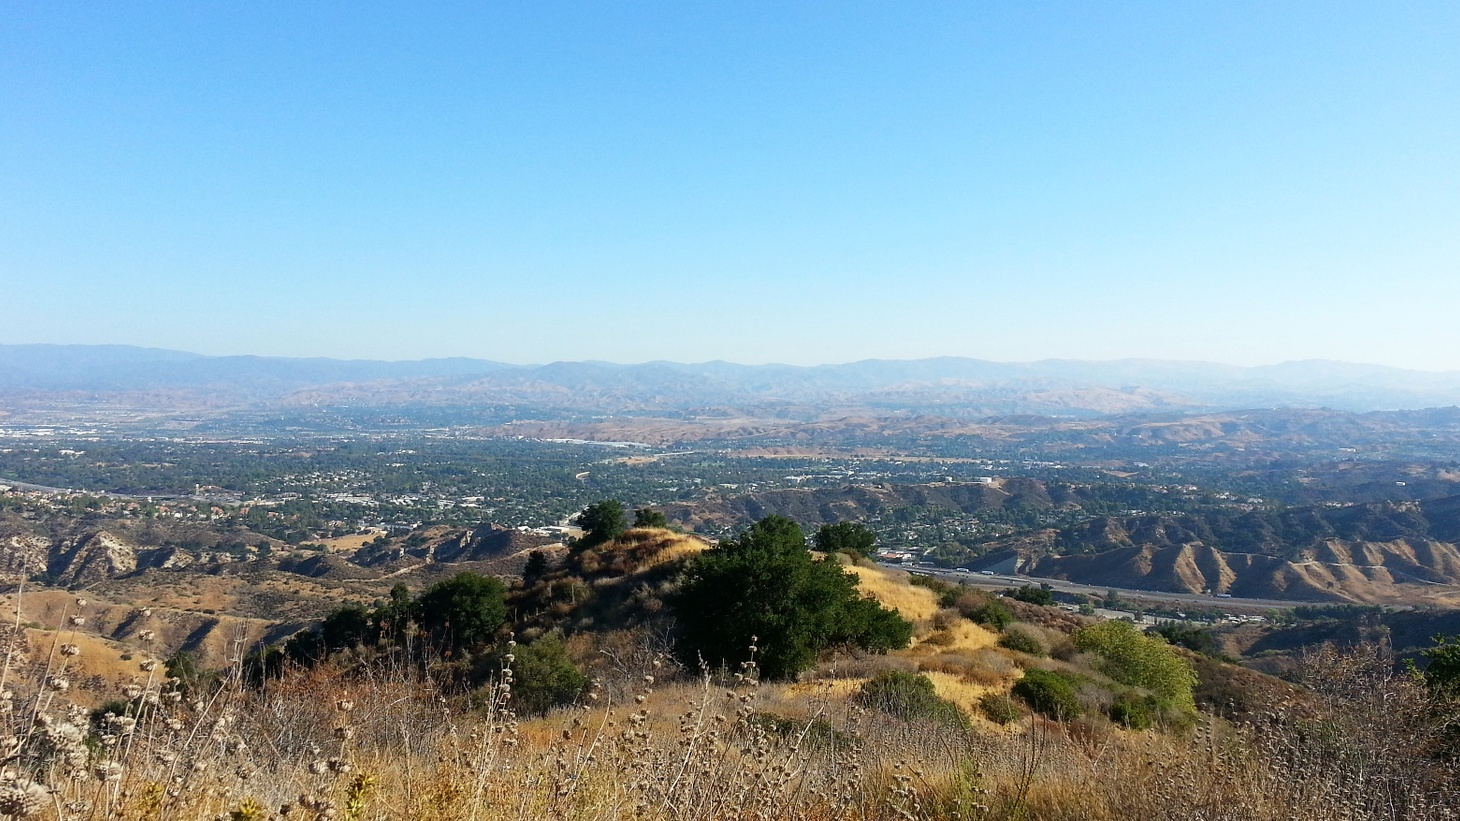 Overlook of Santa Clarita, California.